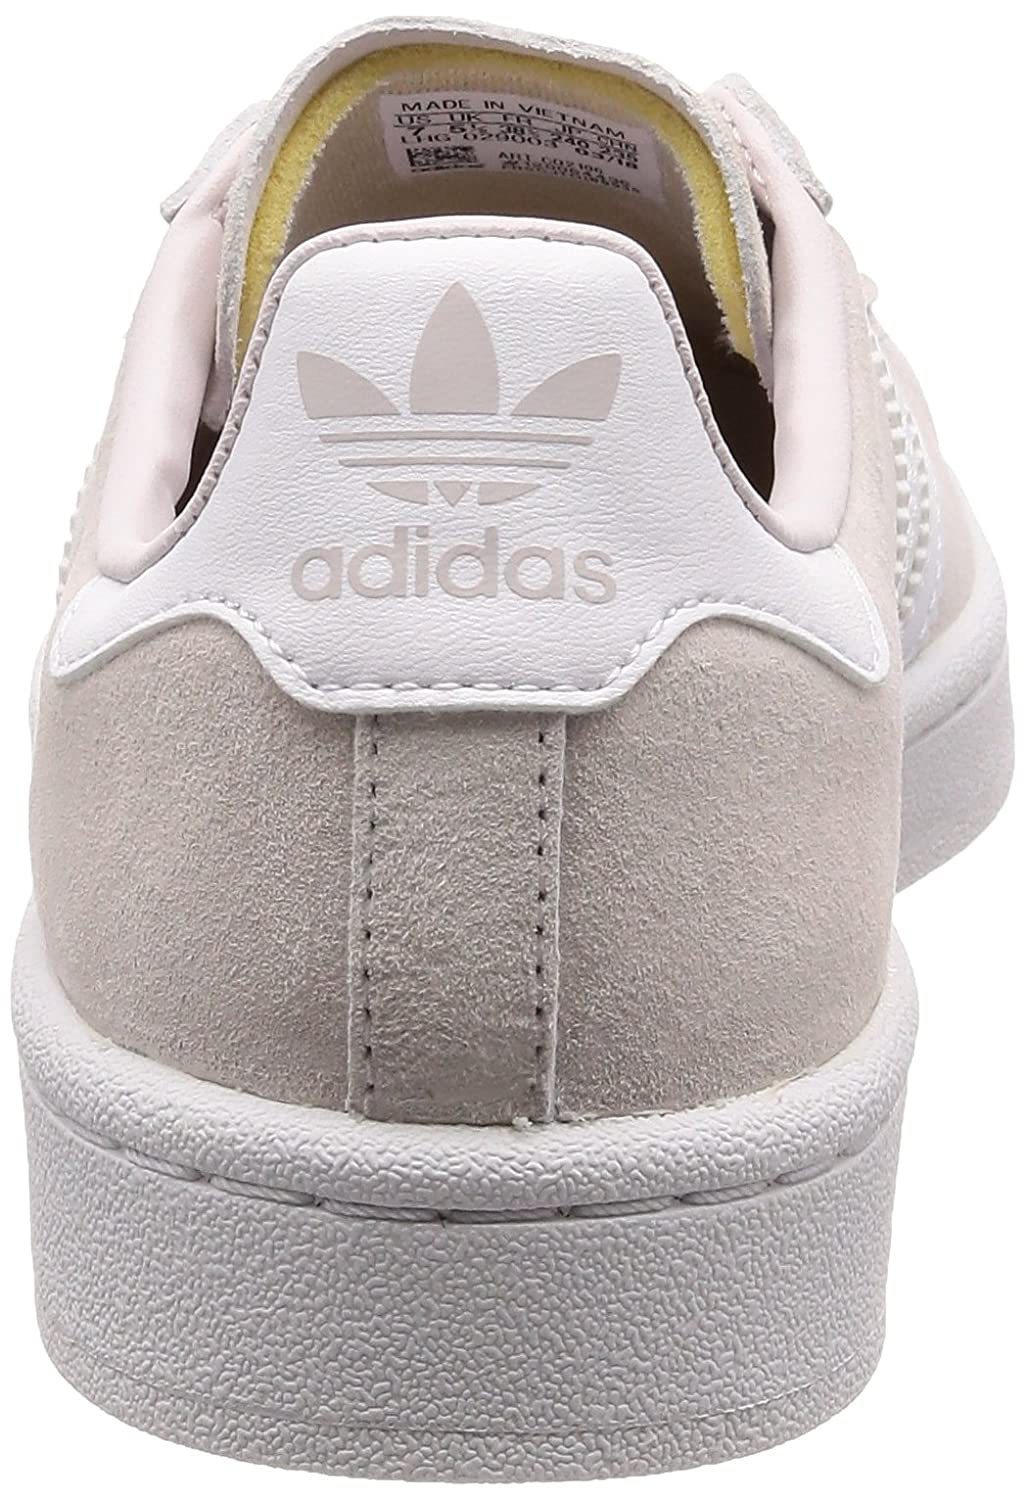 cheap for discount 55033 fef1f adidas Damen Campus W Basketballschuhe violett  Amazon.de  Schuhe    Handtaschen